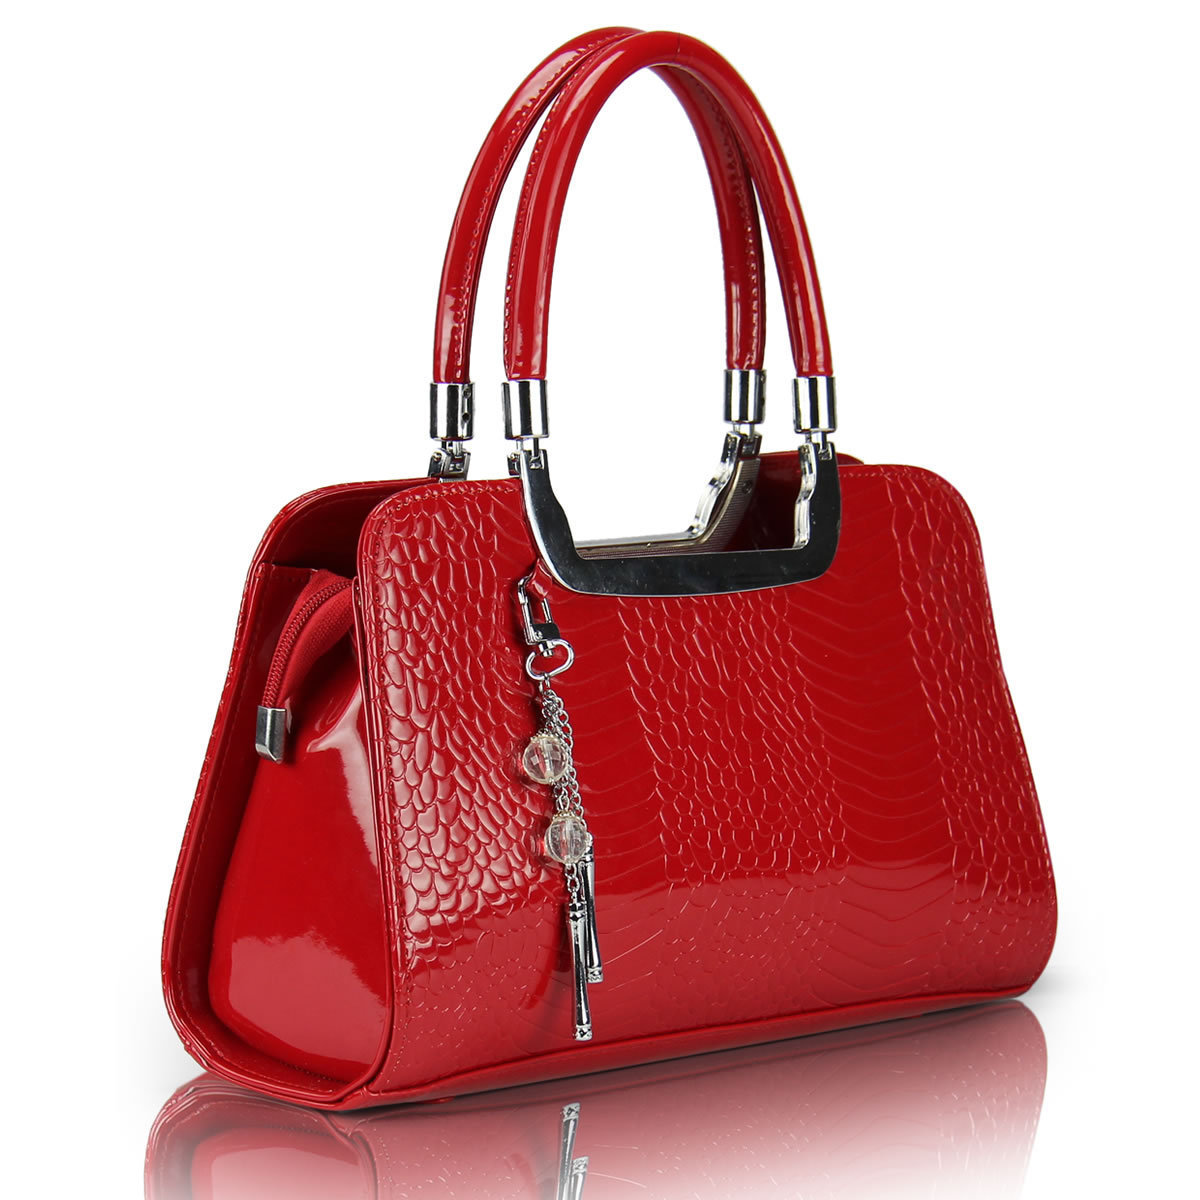 Freeshipping hot Small bags red bridal bag 2013 women's handbag ol one shoulder handbag bright japanned leather(China (Mainland))